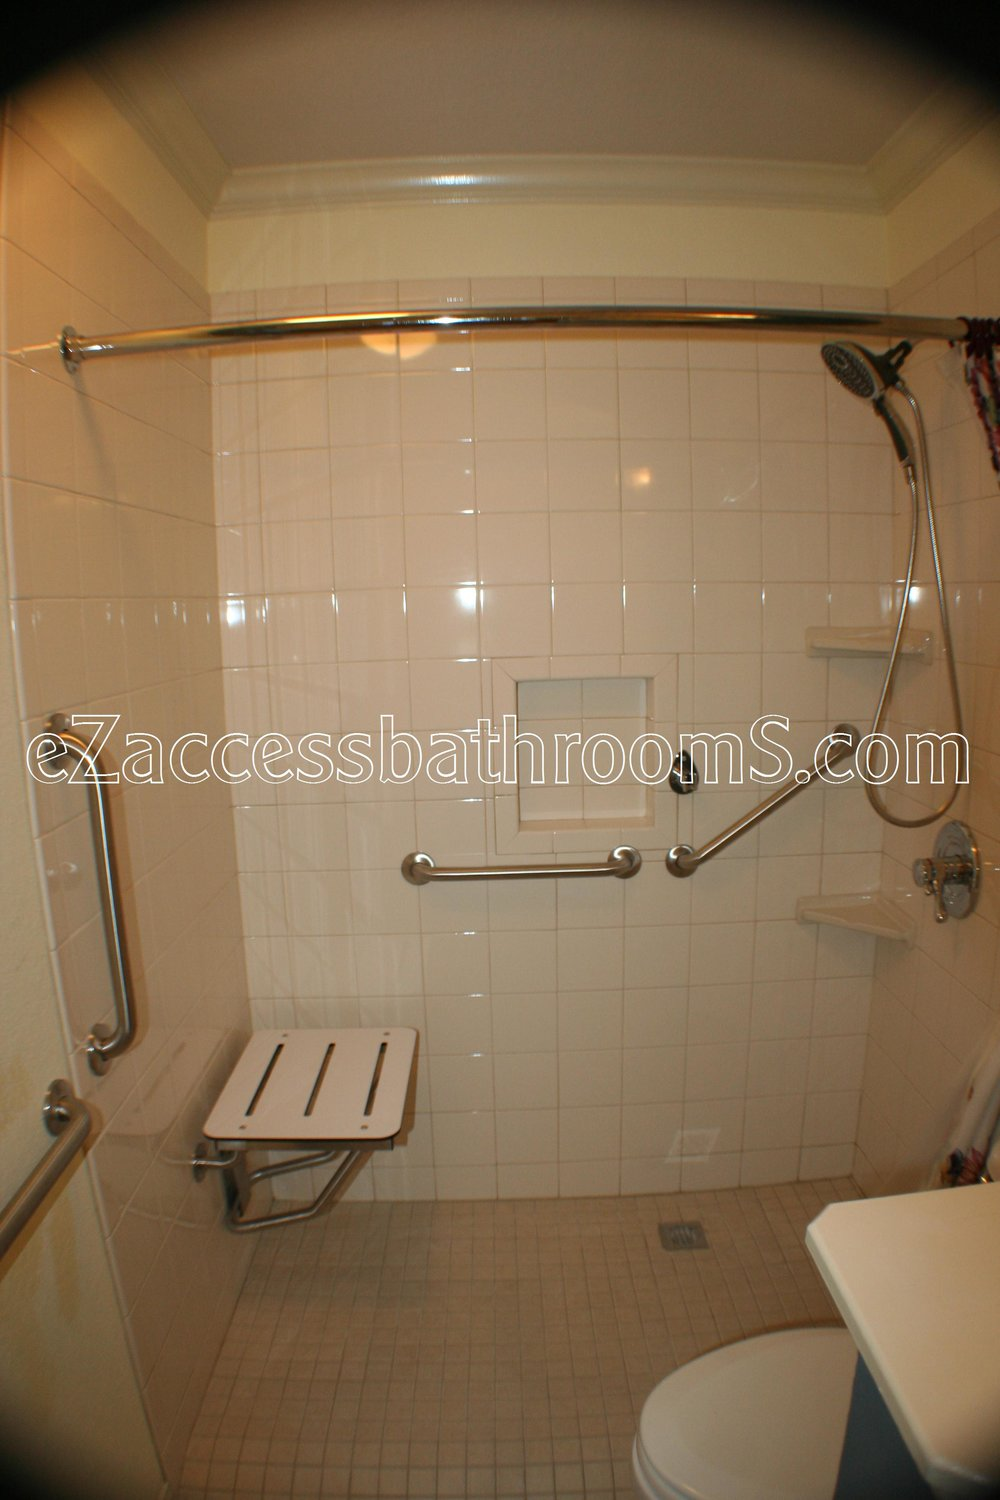 BARRIER FREE BATHROOMS EZACCESSBATHROOMS.COM 832202843 DURST; 085.JPG